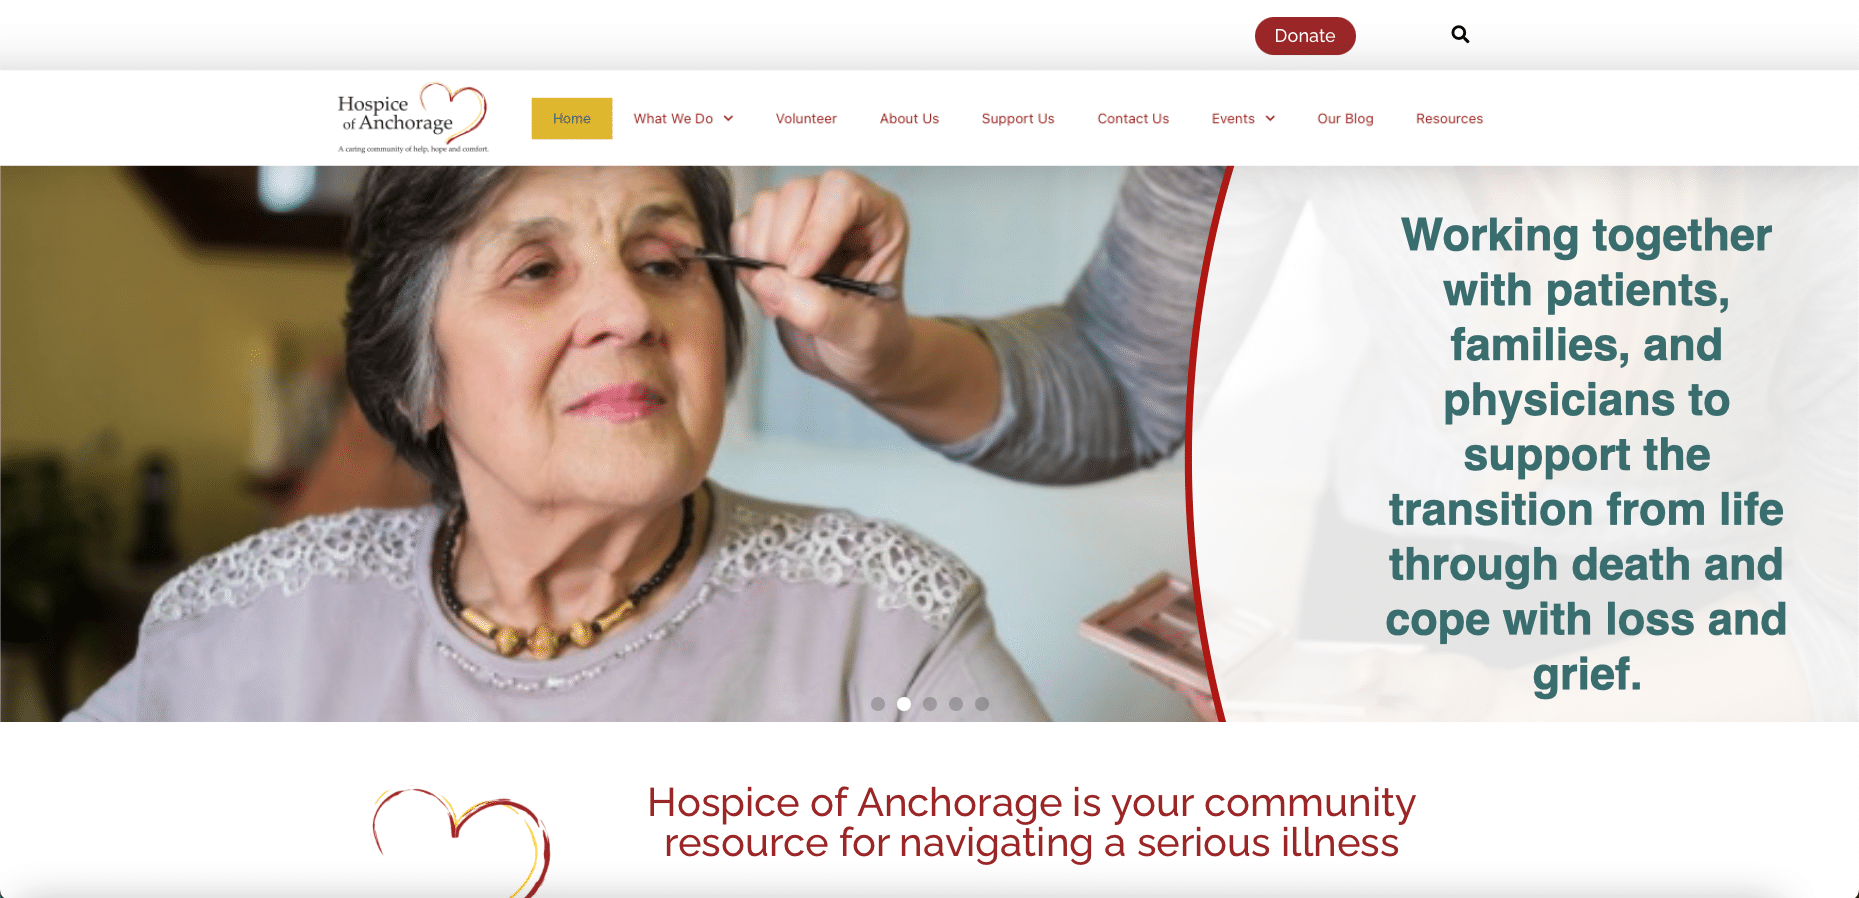 Hospice of Anchorage upgrades their website 2